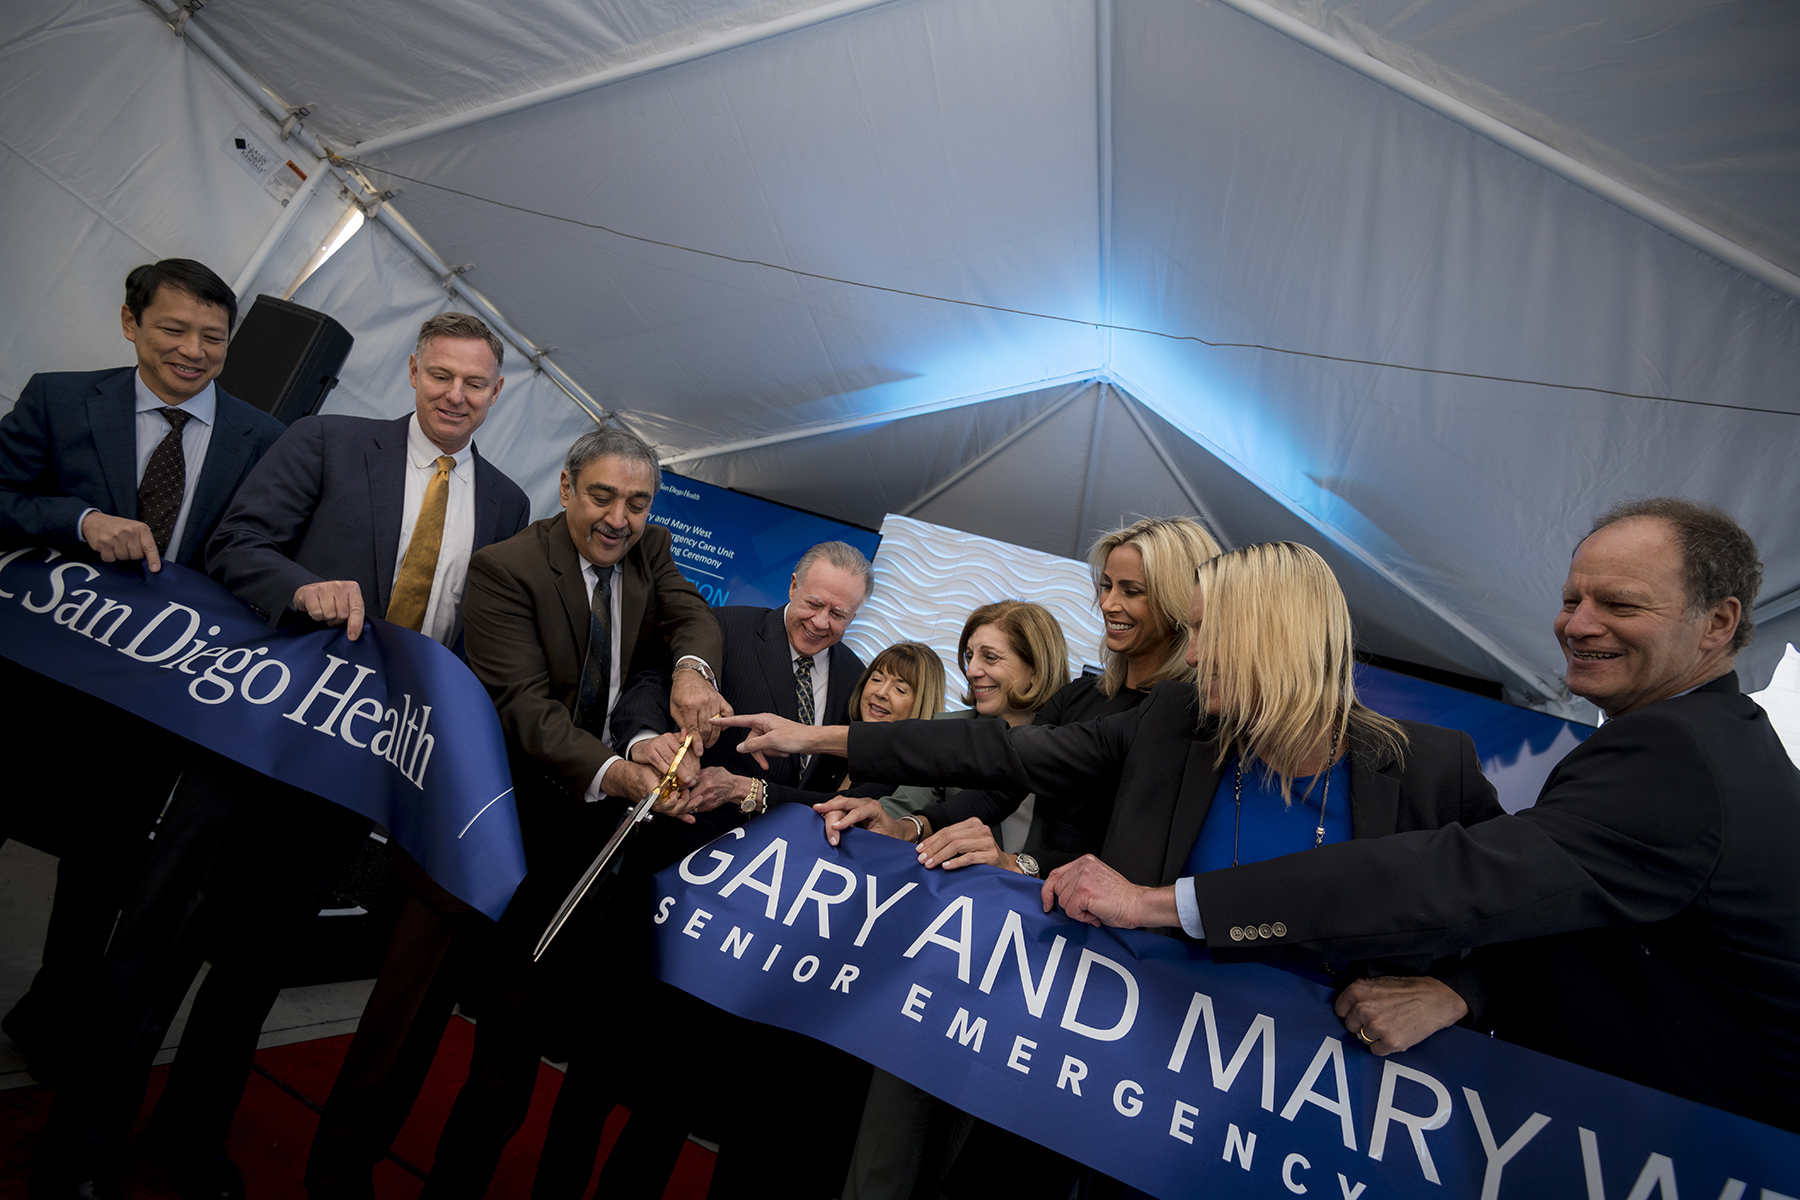 Chancellor Khosla cuts the ribbon at West Health Senior Emergency Care Center